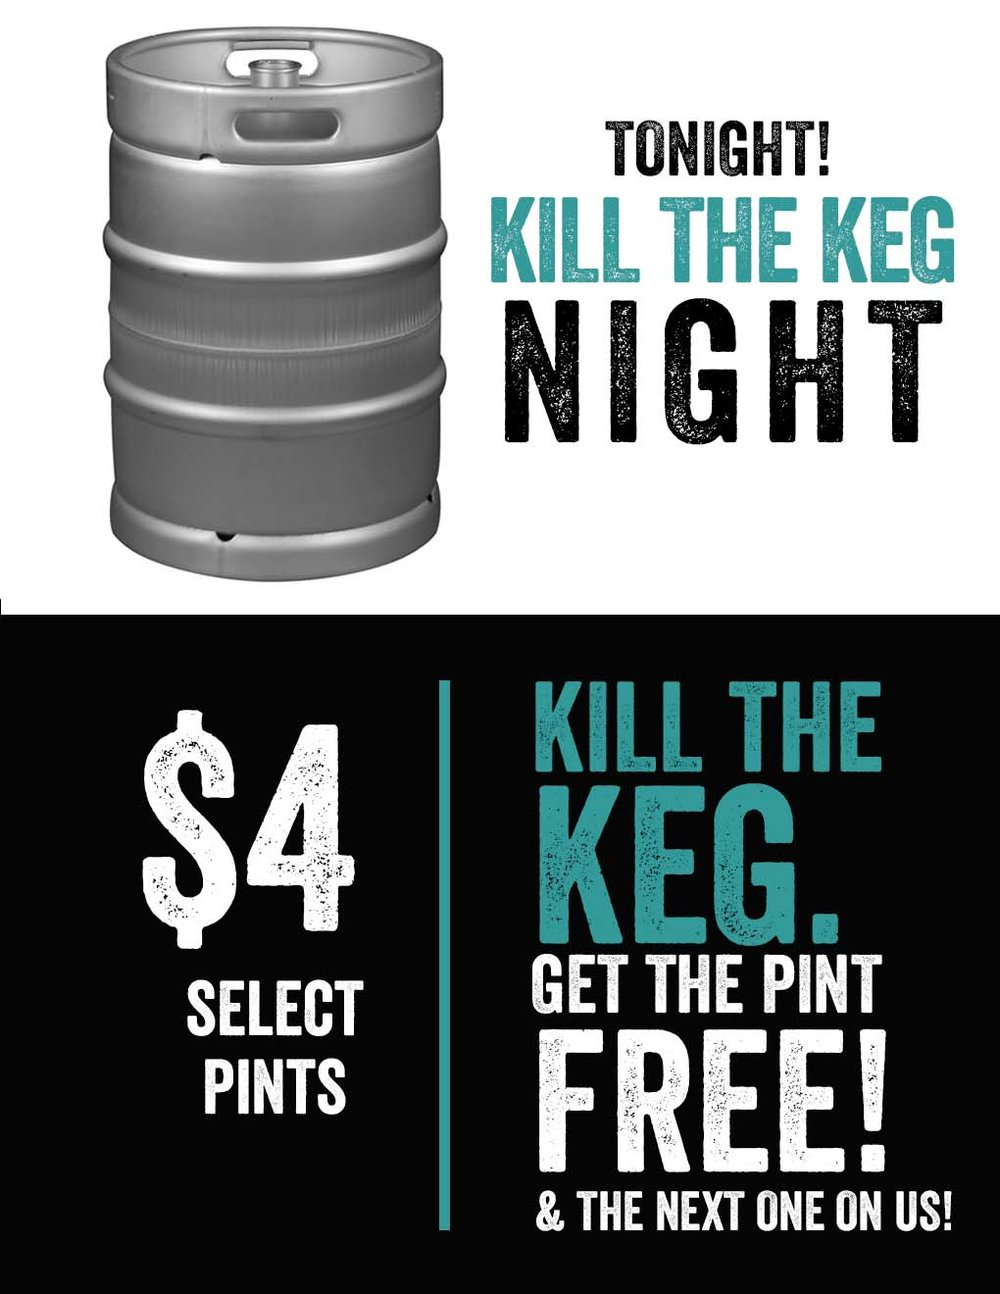 Come help us kill some kegs!  How it works?  Just buy the $4 featured promo pint...and if the keg blows during your pour, you get that pour (whether full or empty) ... AND your choice of another pint on us!